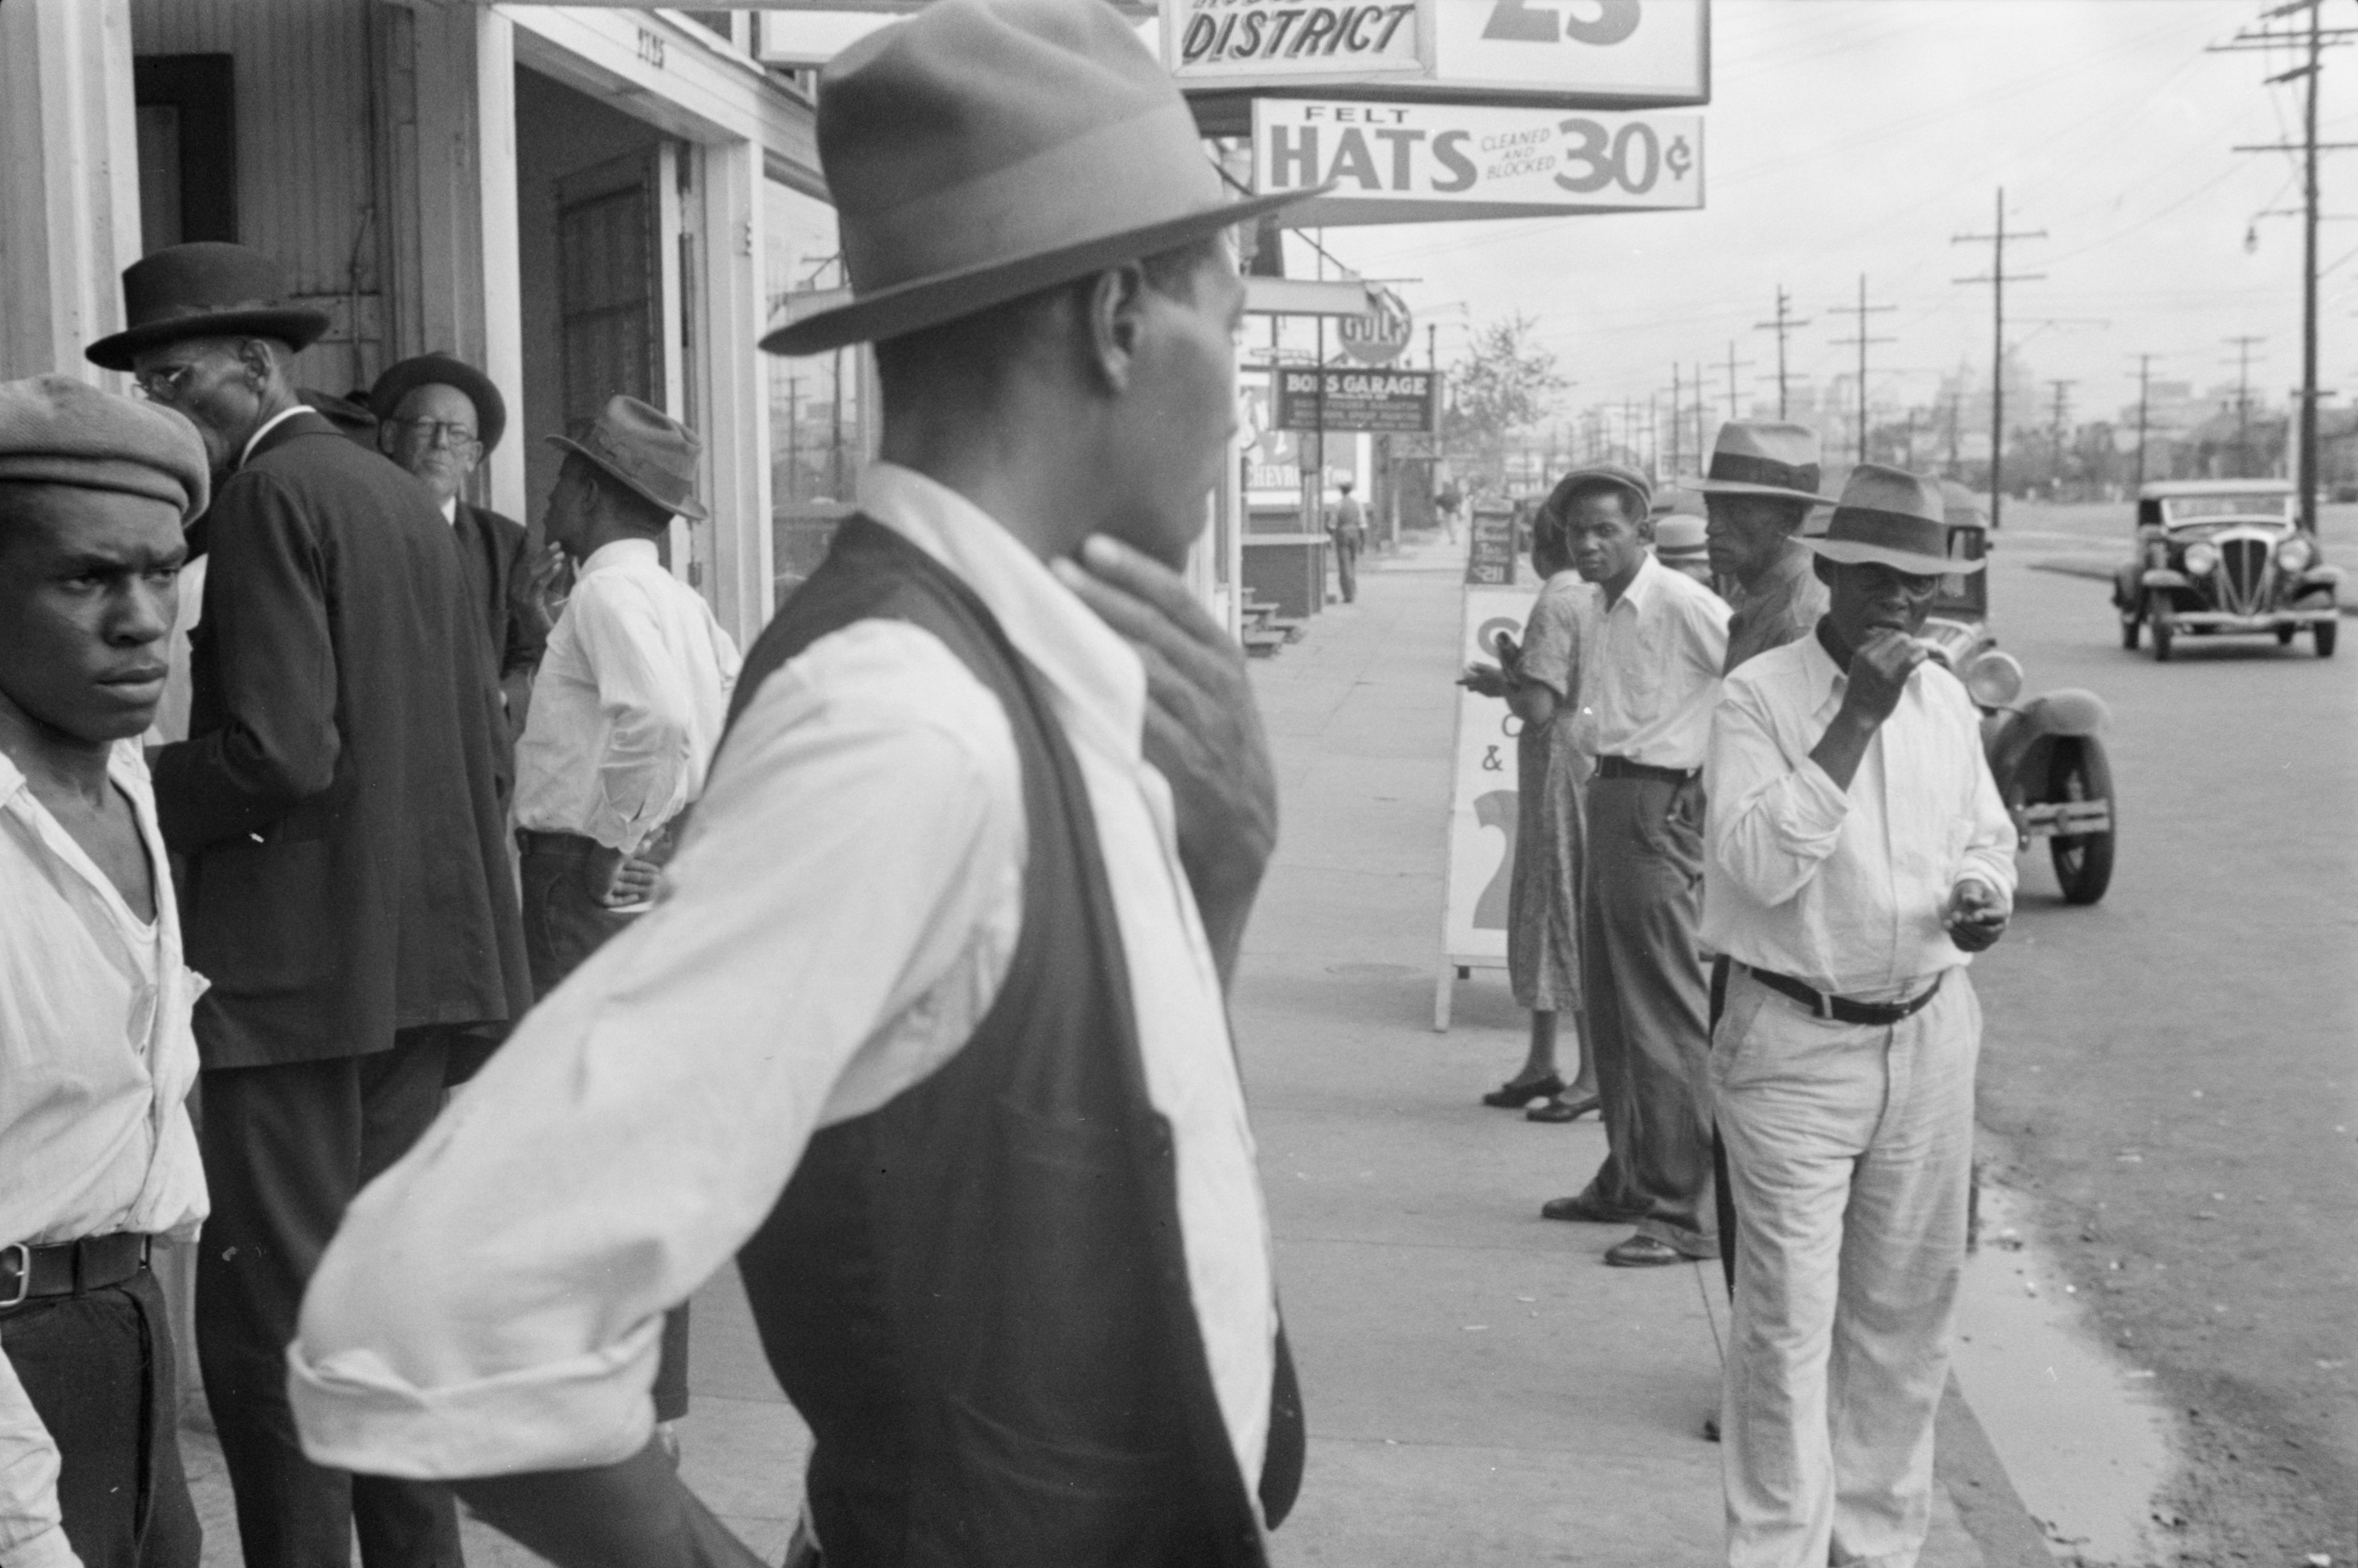 1930s New Orleans Fashion Google Search 1930s New